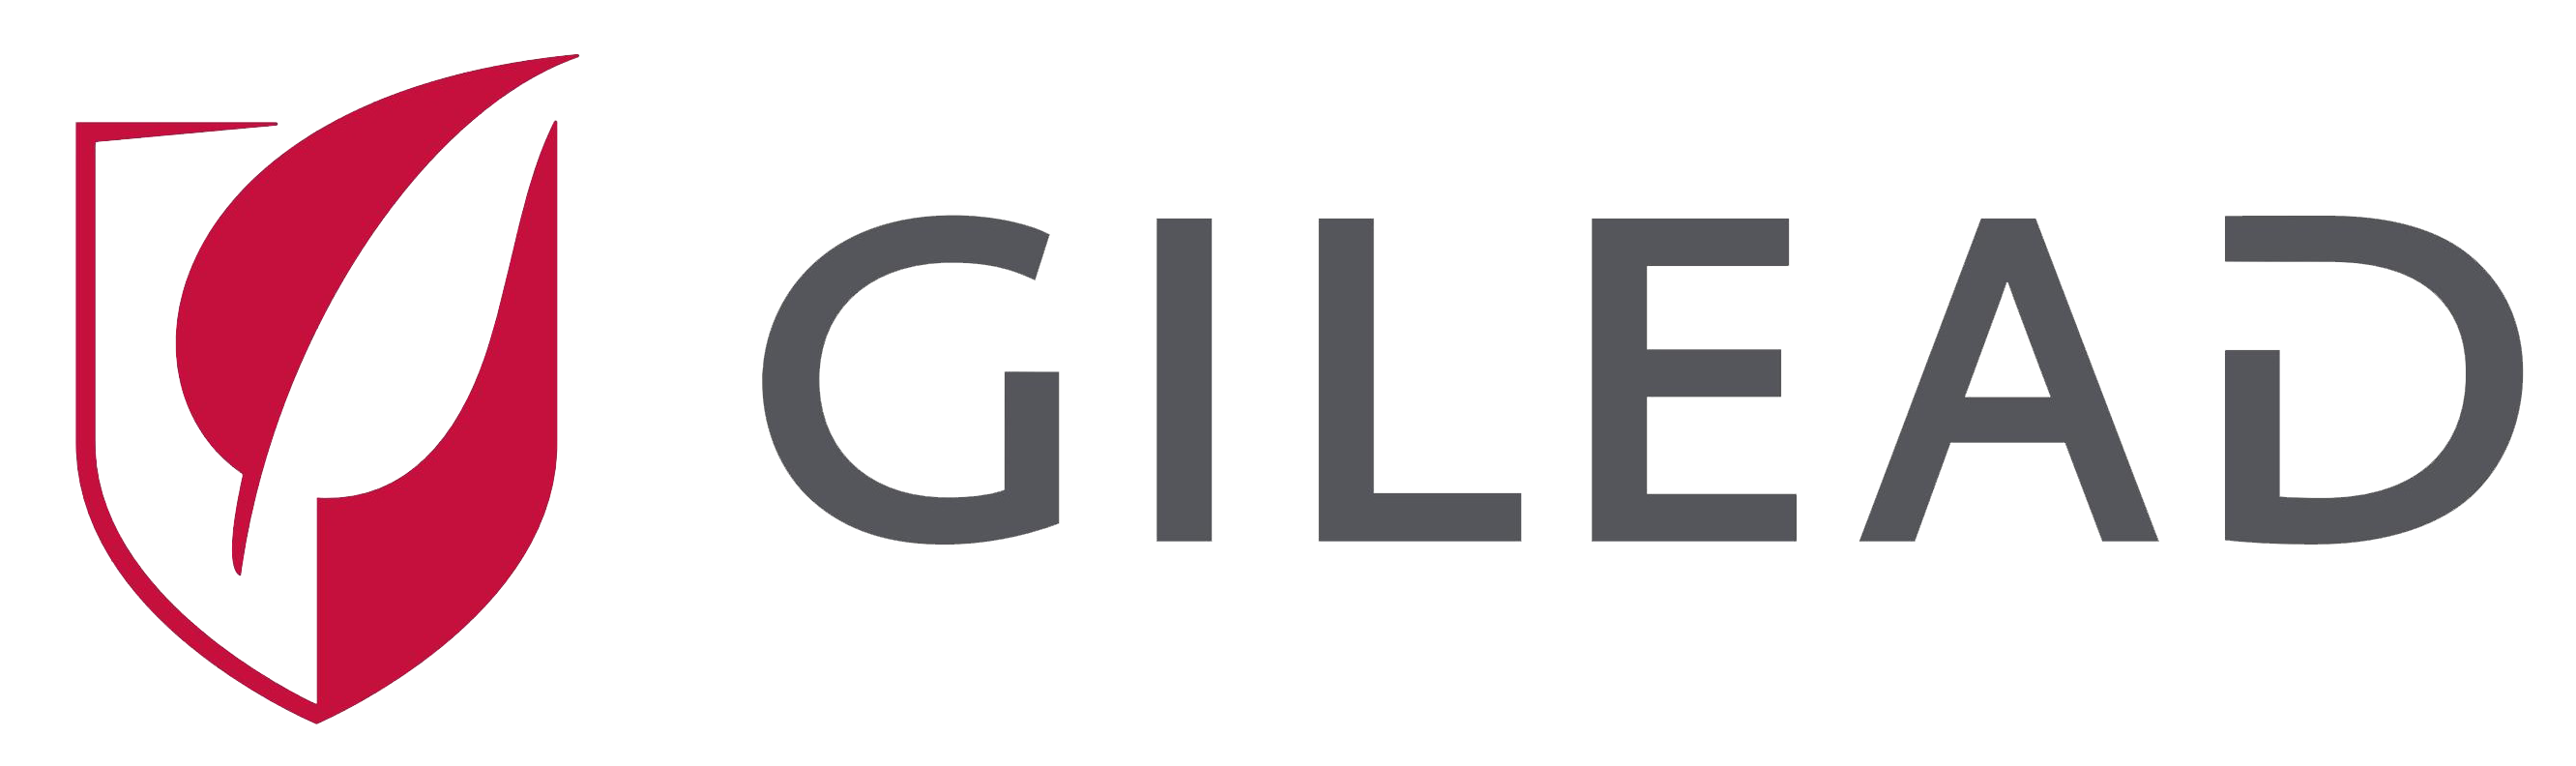 Gilead Logo Transparent